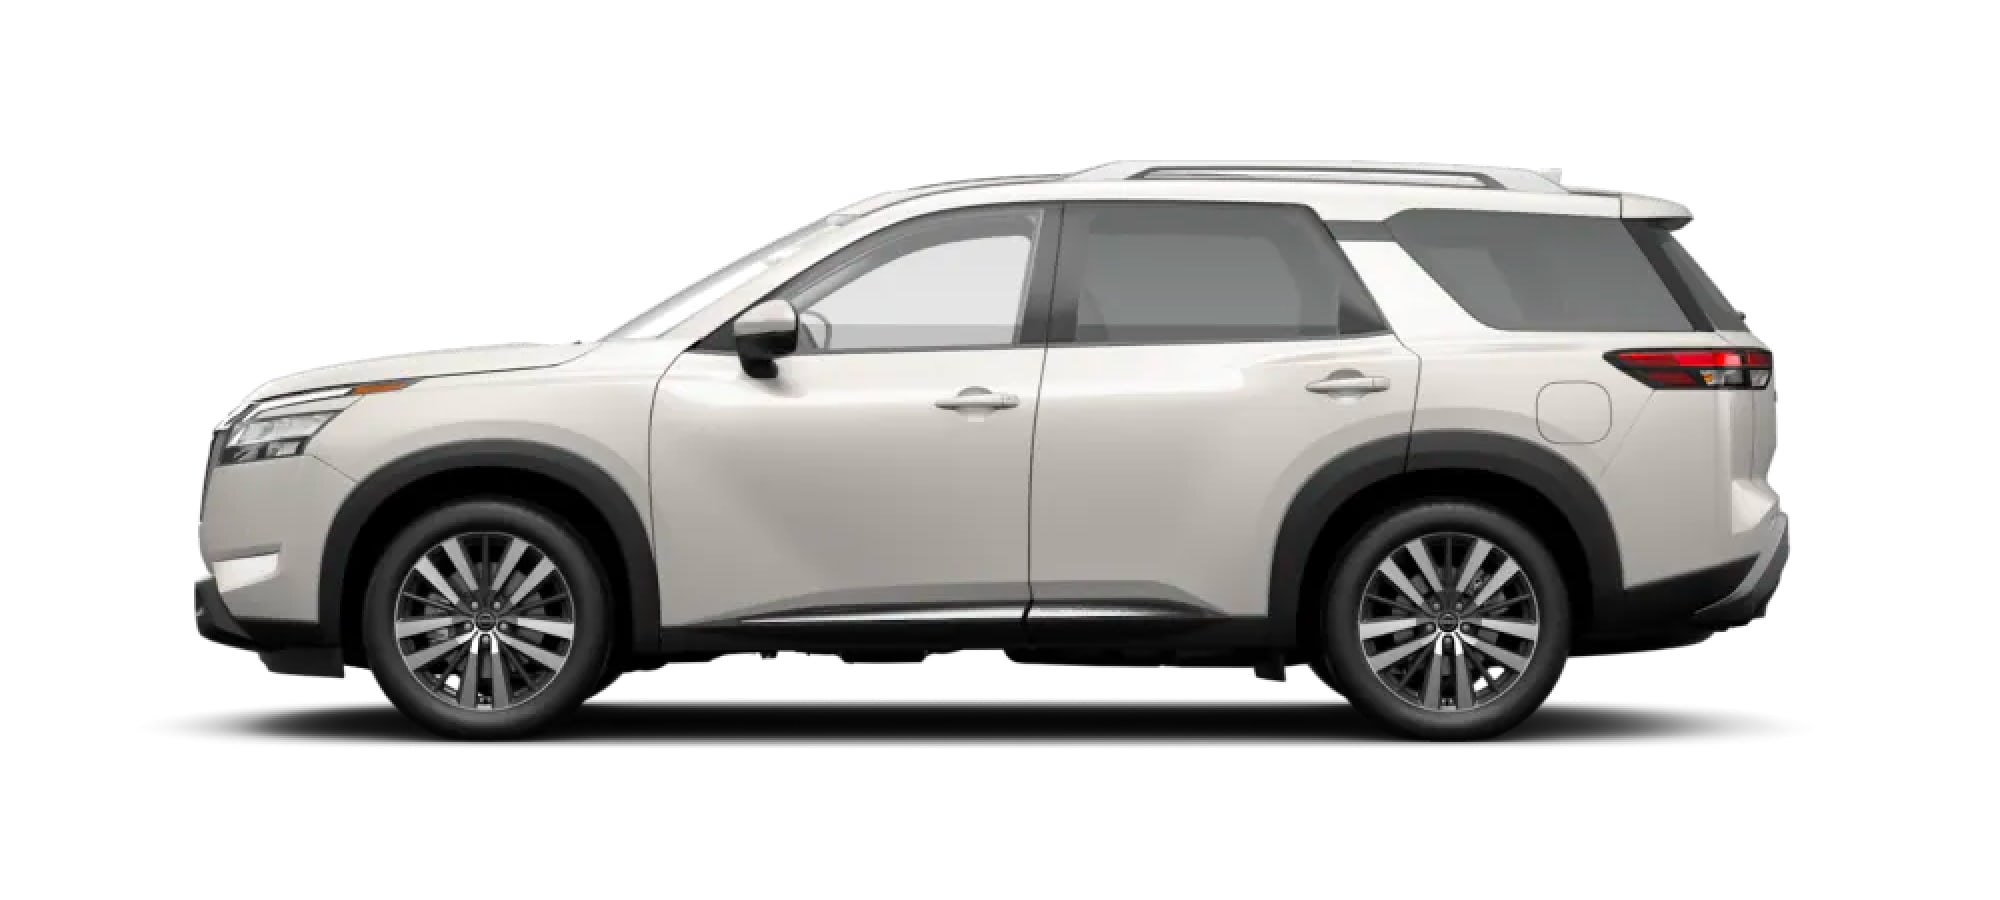 2022 Nissan Pathfinder in Pearl White TriCoat